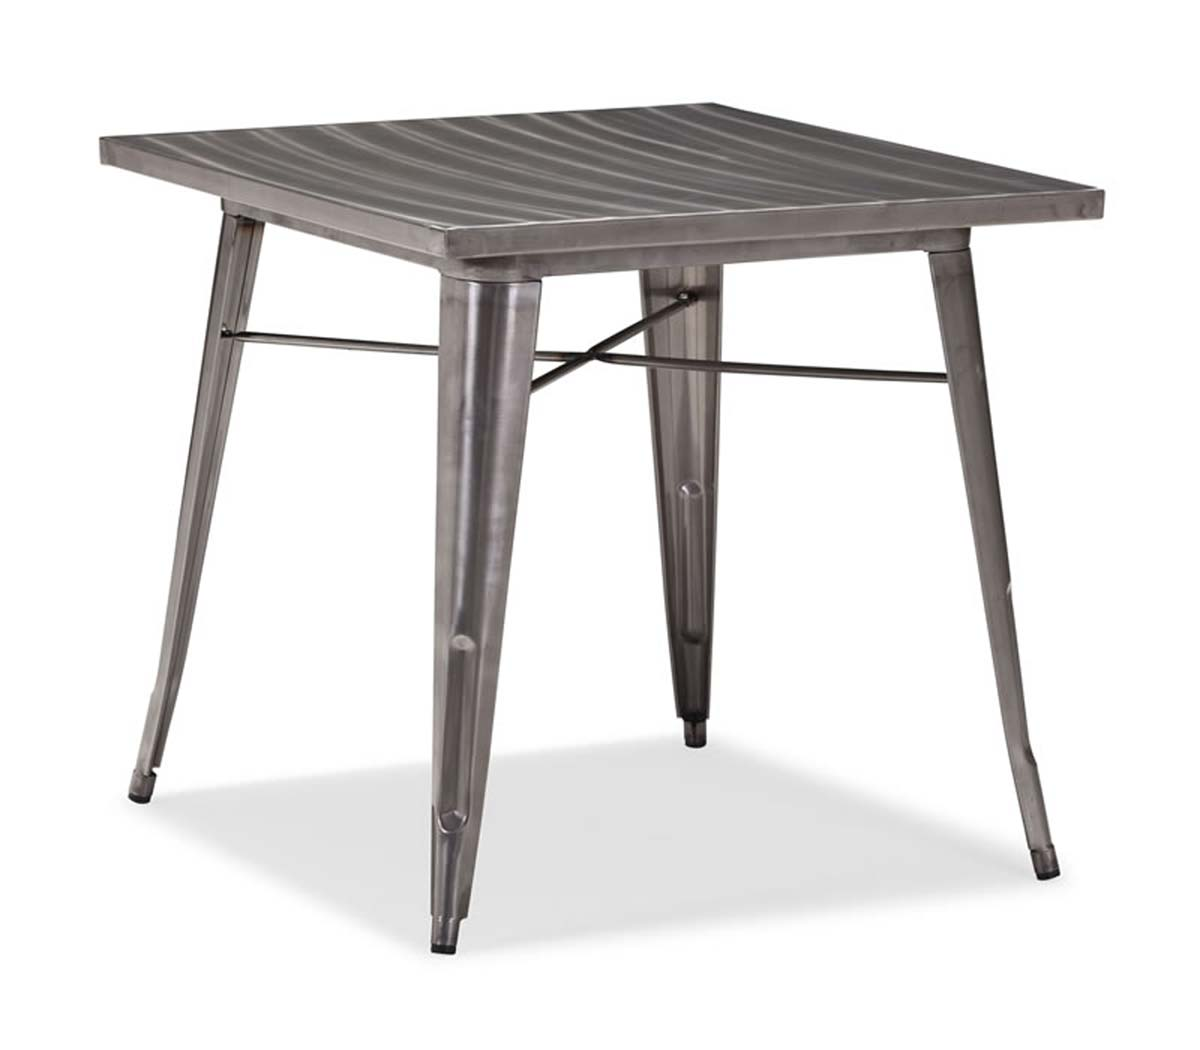 Zuo Modern Olympia Dining Table - Gunmetal